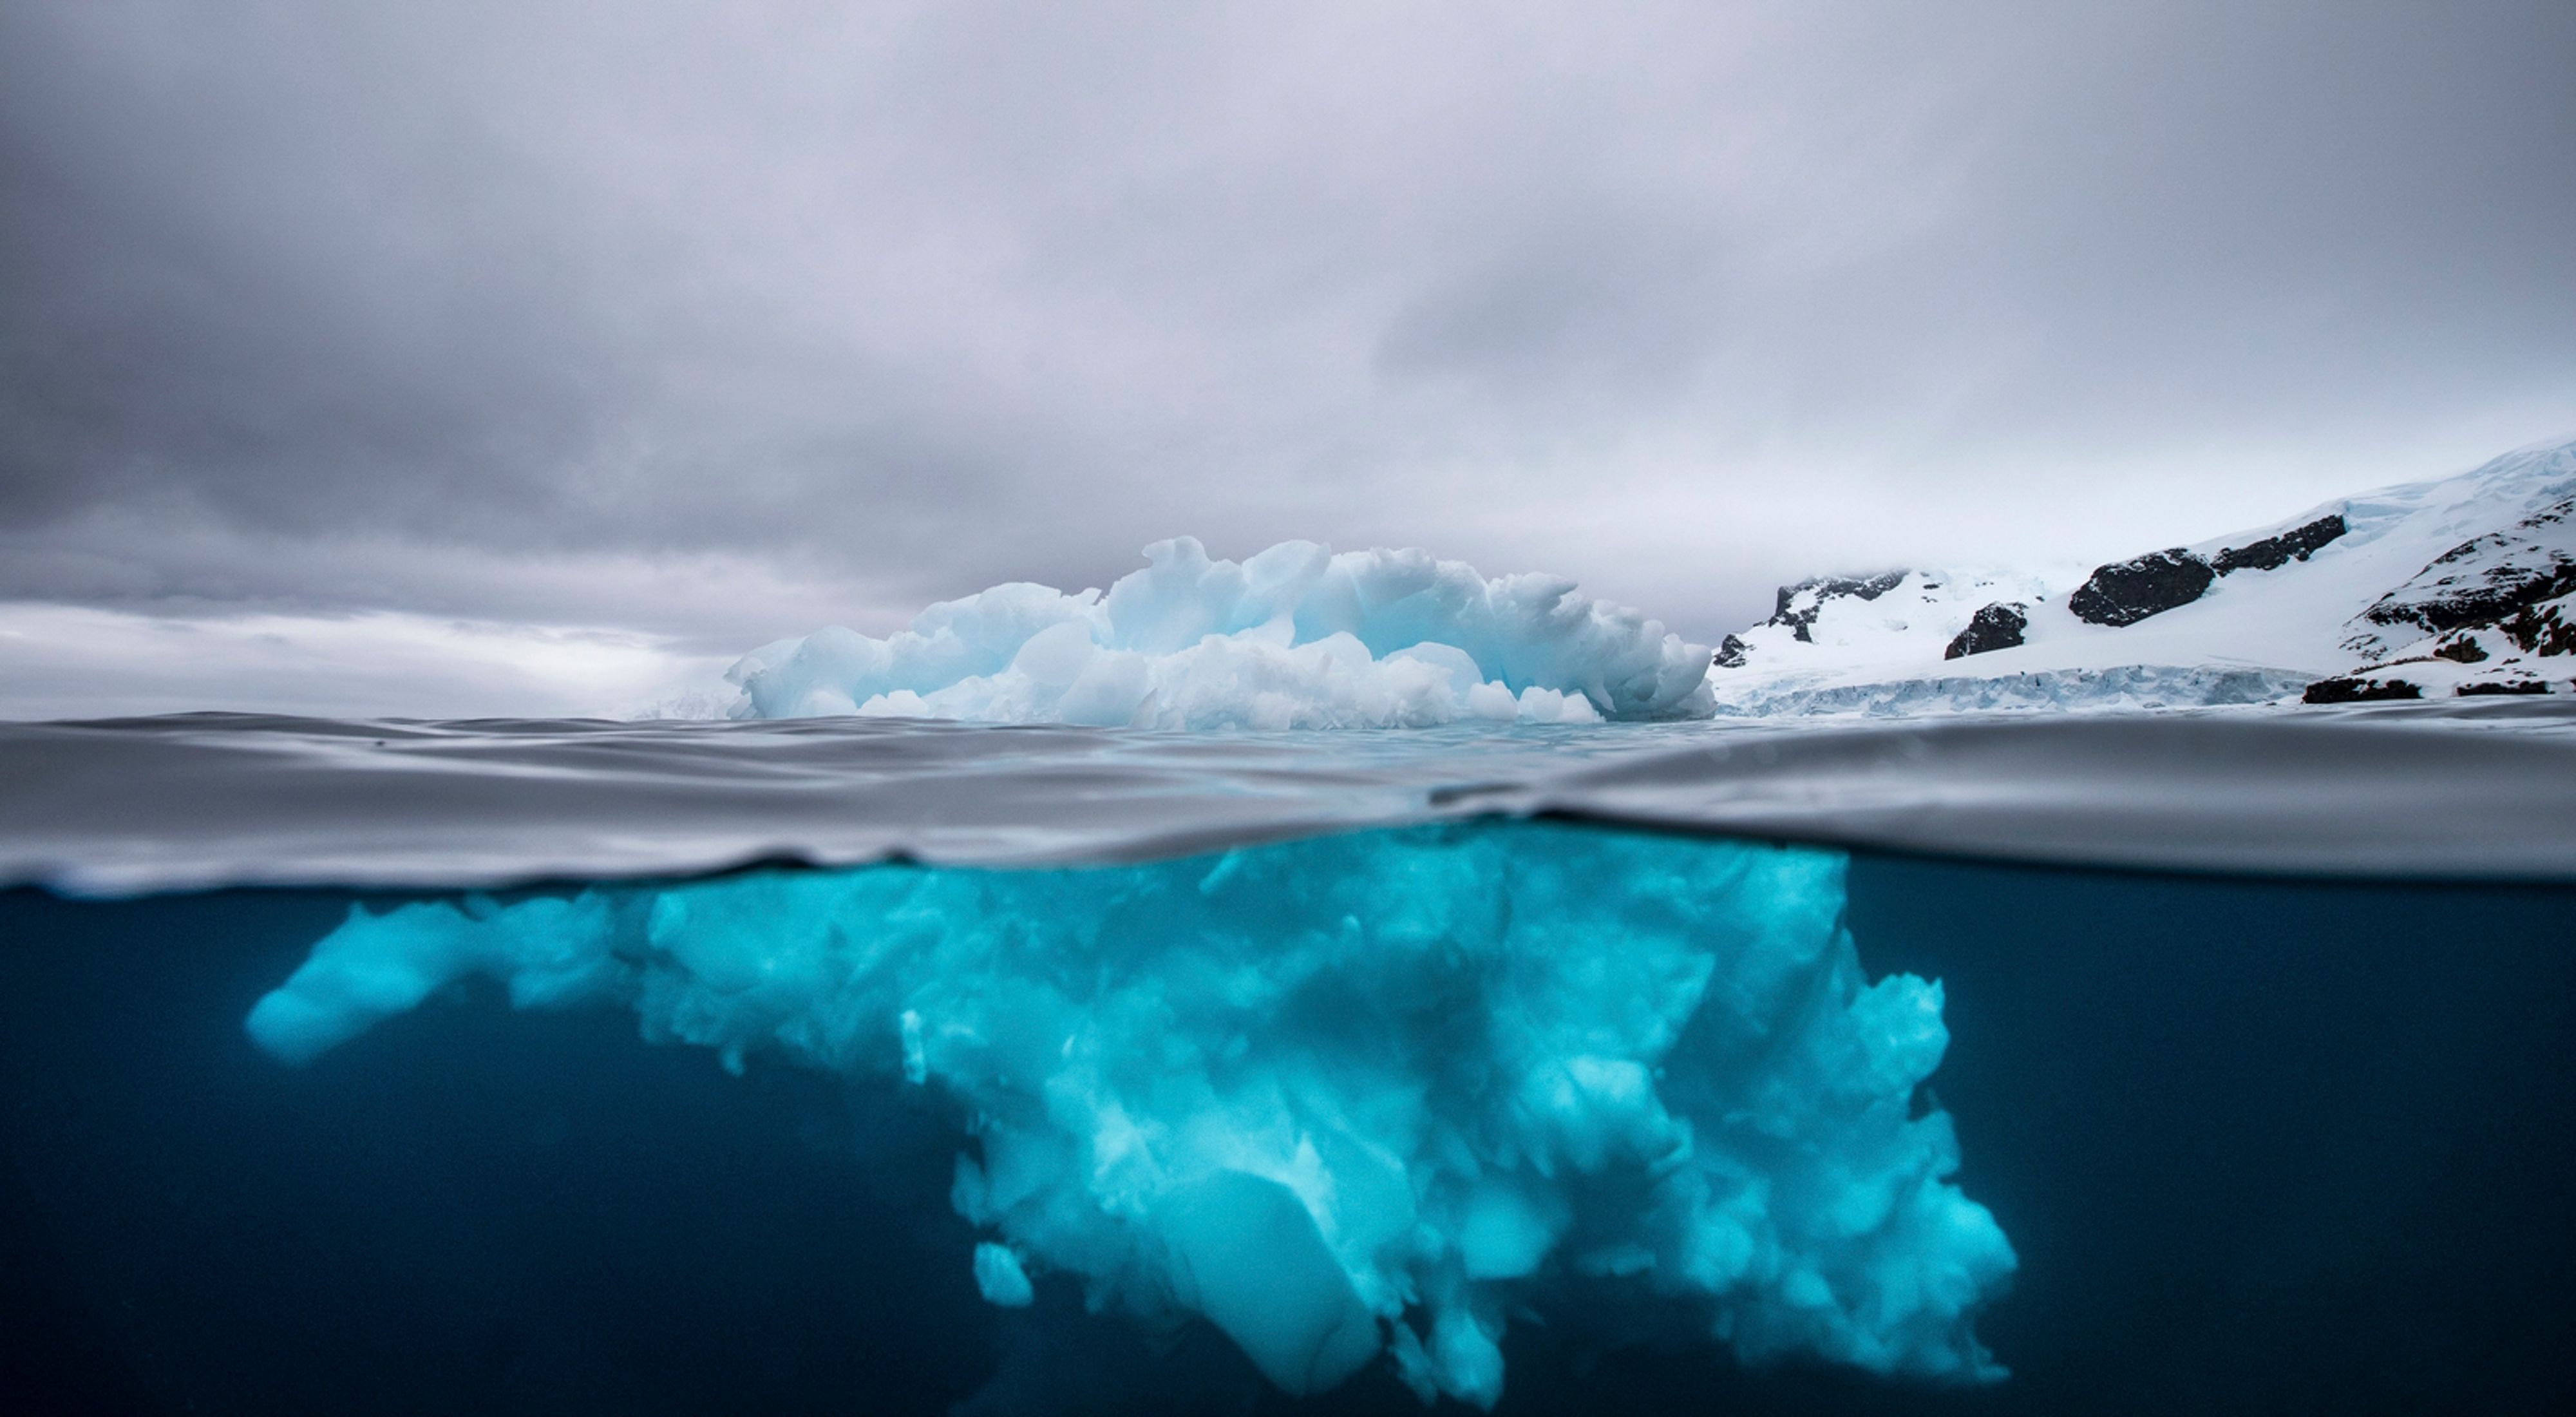 The intricate shape of an iceberg, above and below